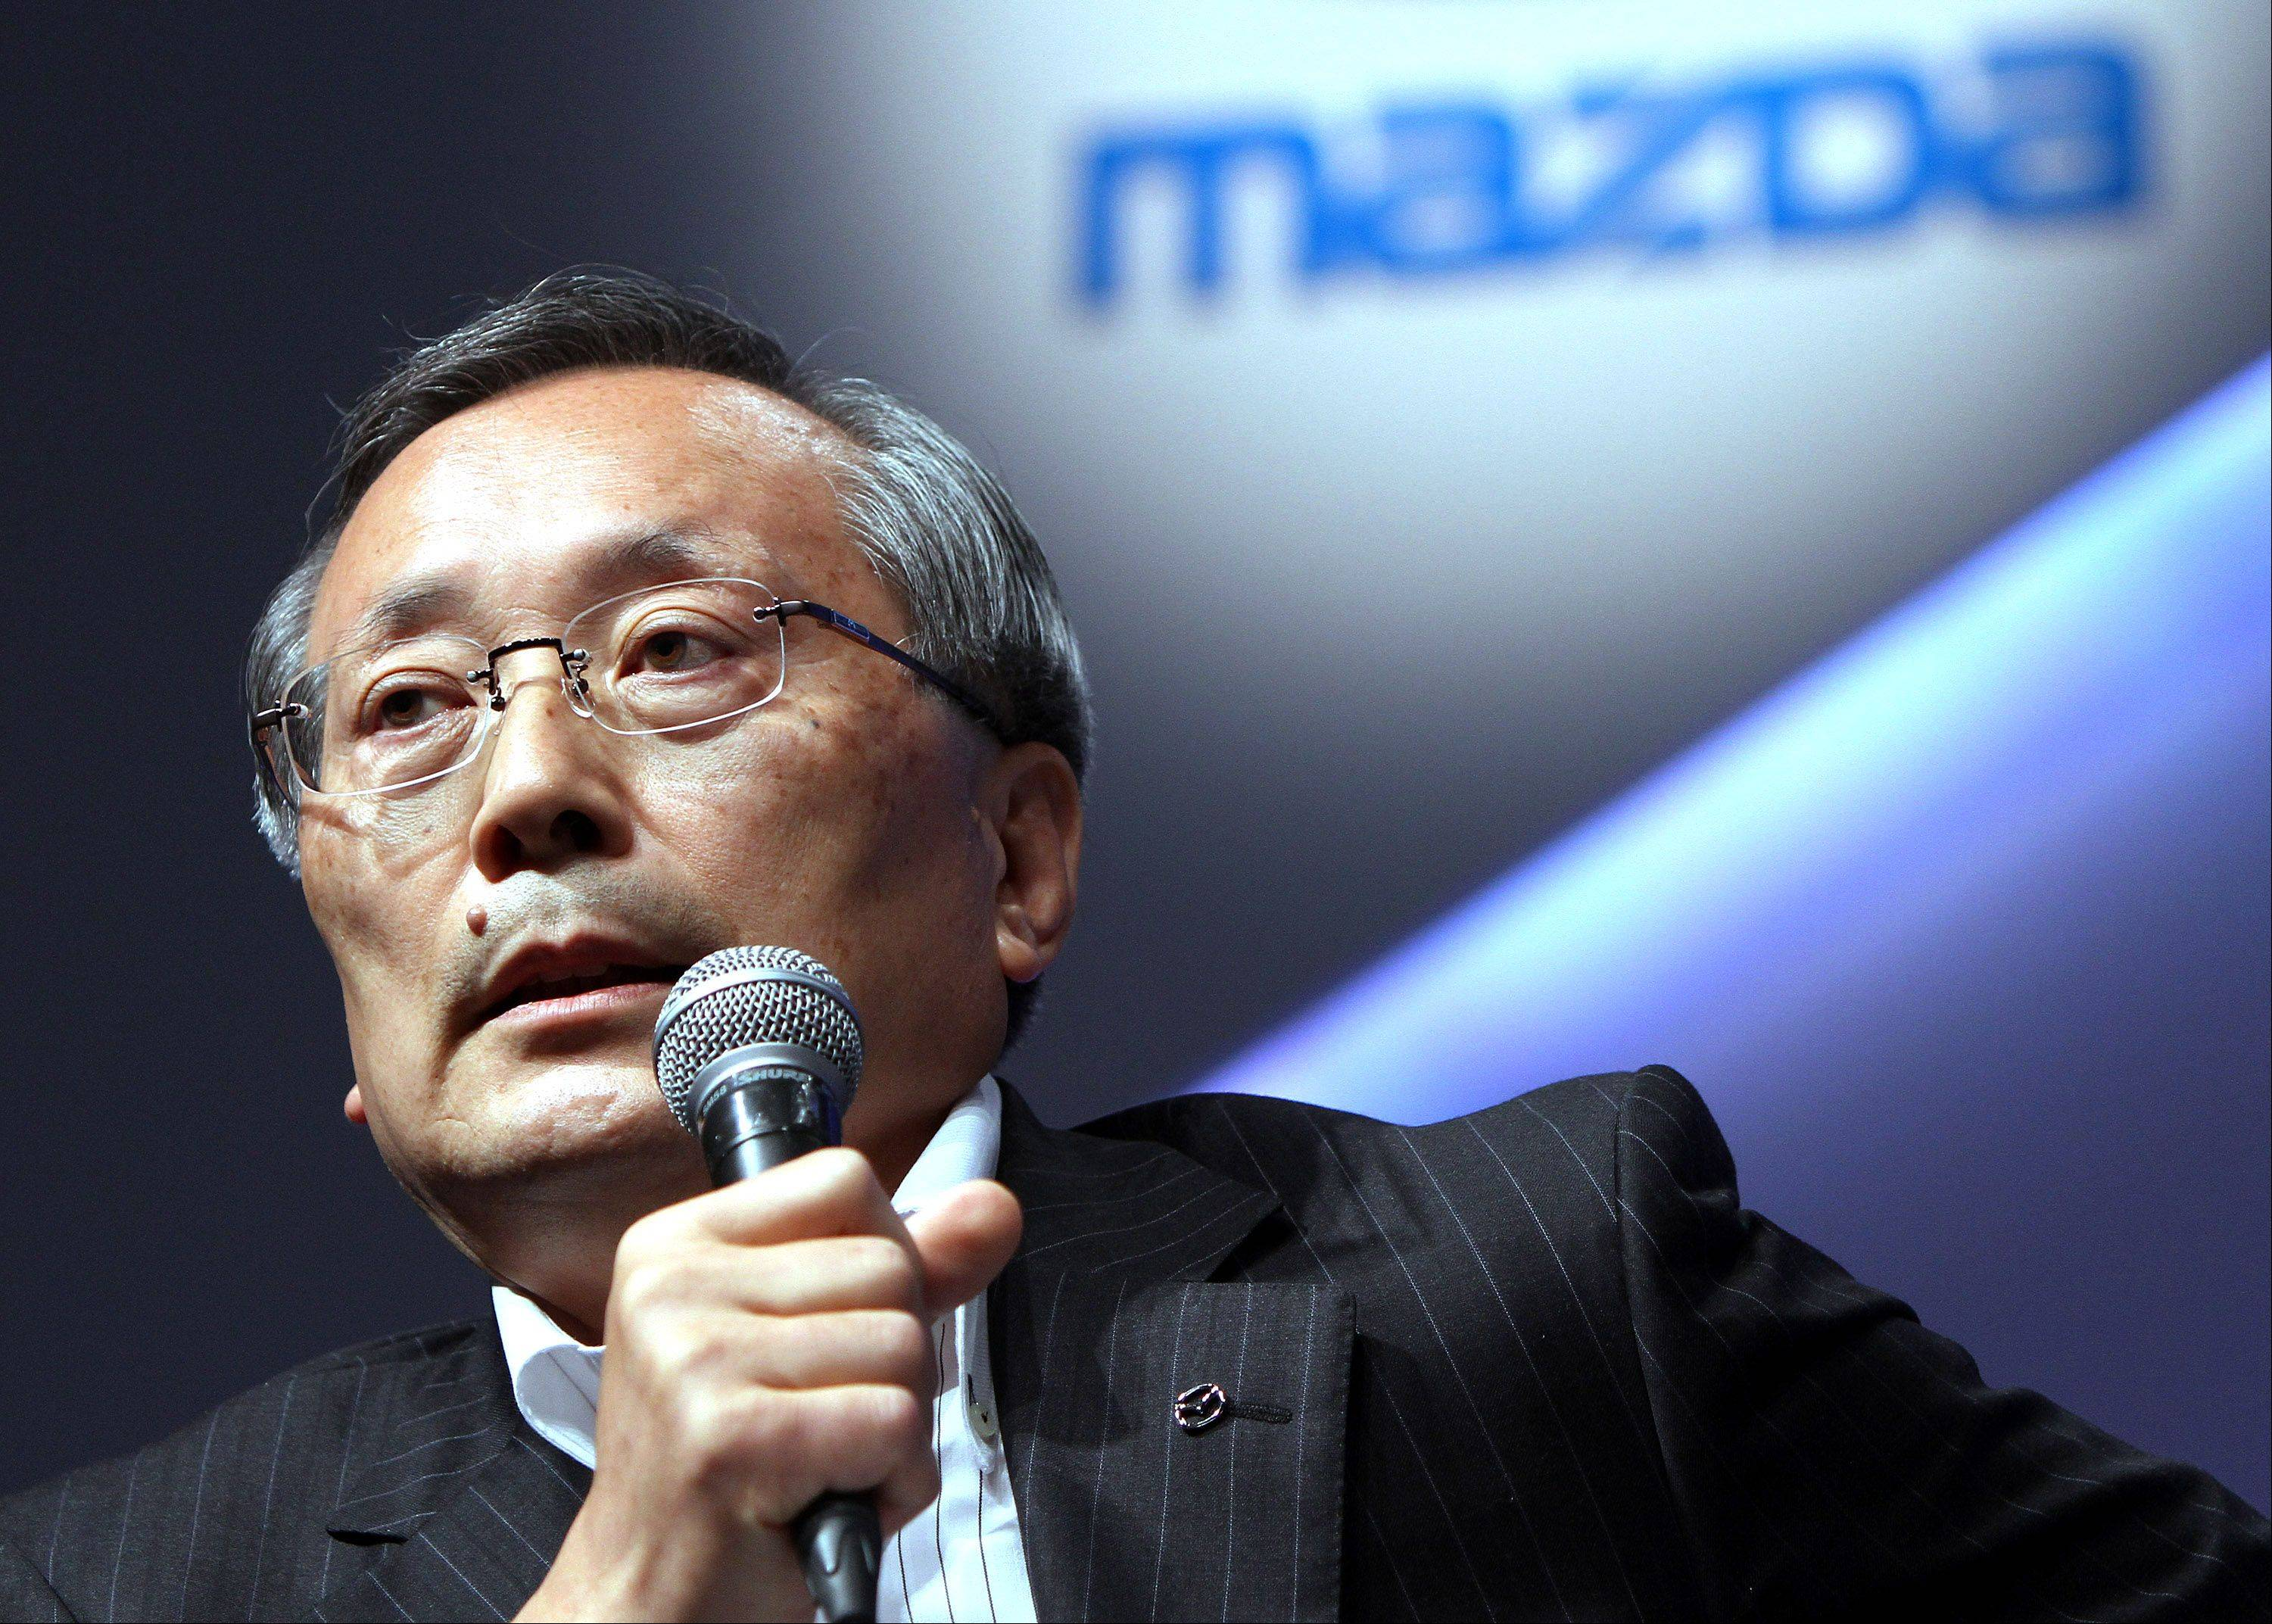 Takashi Yamanouchi, chairman, president and chief executive officer of Mazda Motor Corp., says Mazda plans to sell 6,000 units of the new Demio compact car a month in Japan.